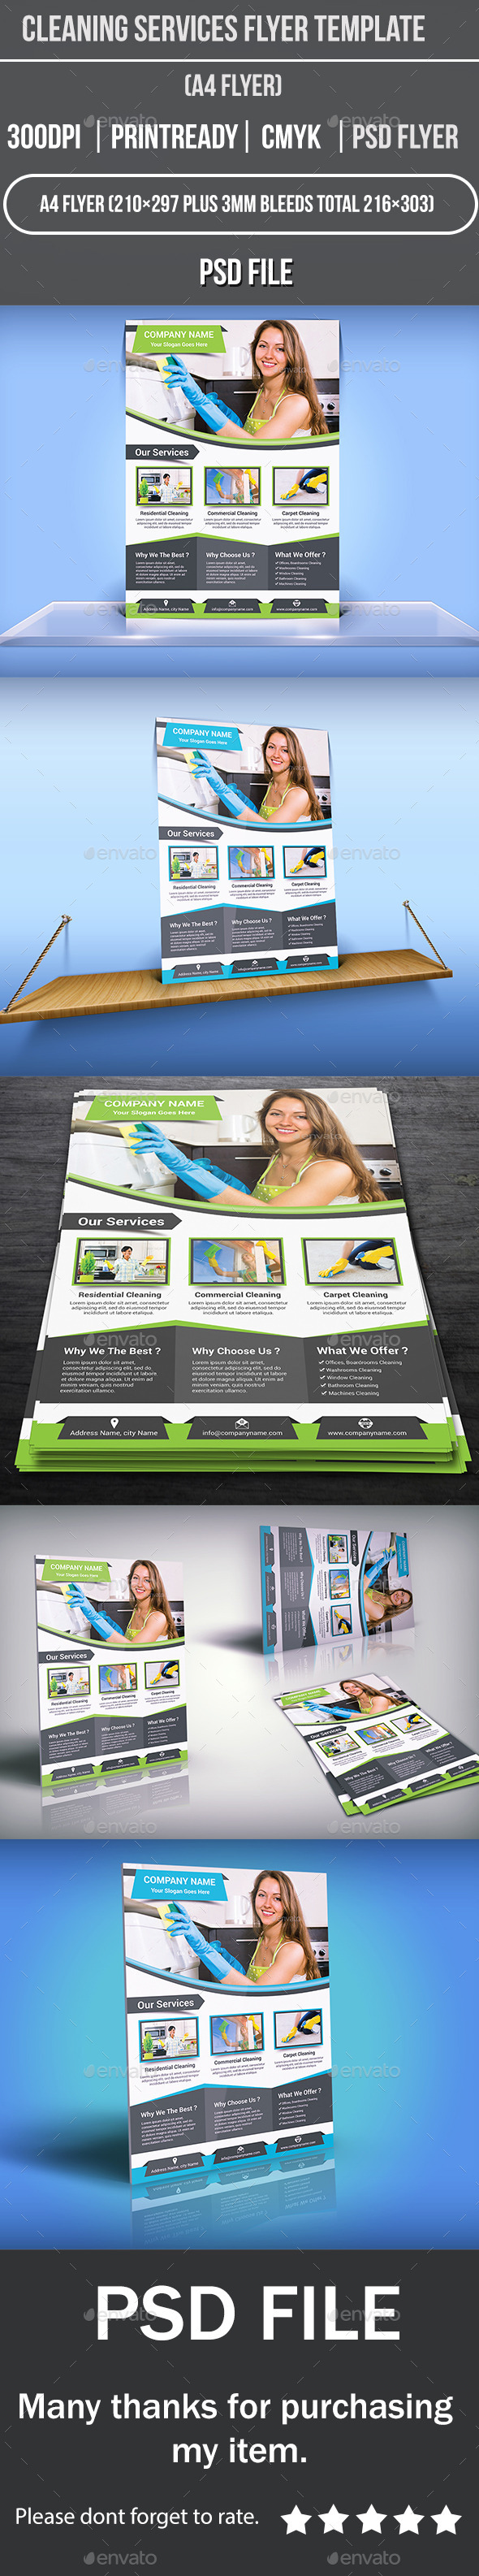 GraphicRiver Cleaning Services Flyer Template 11973114